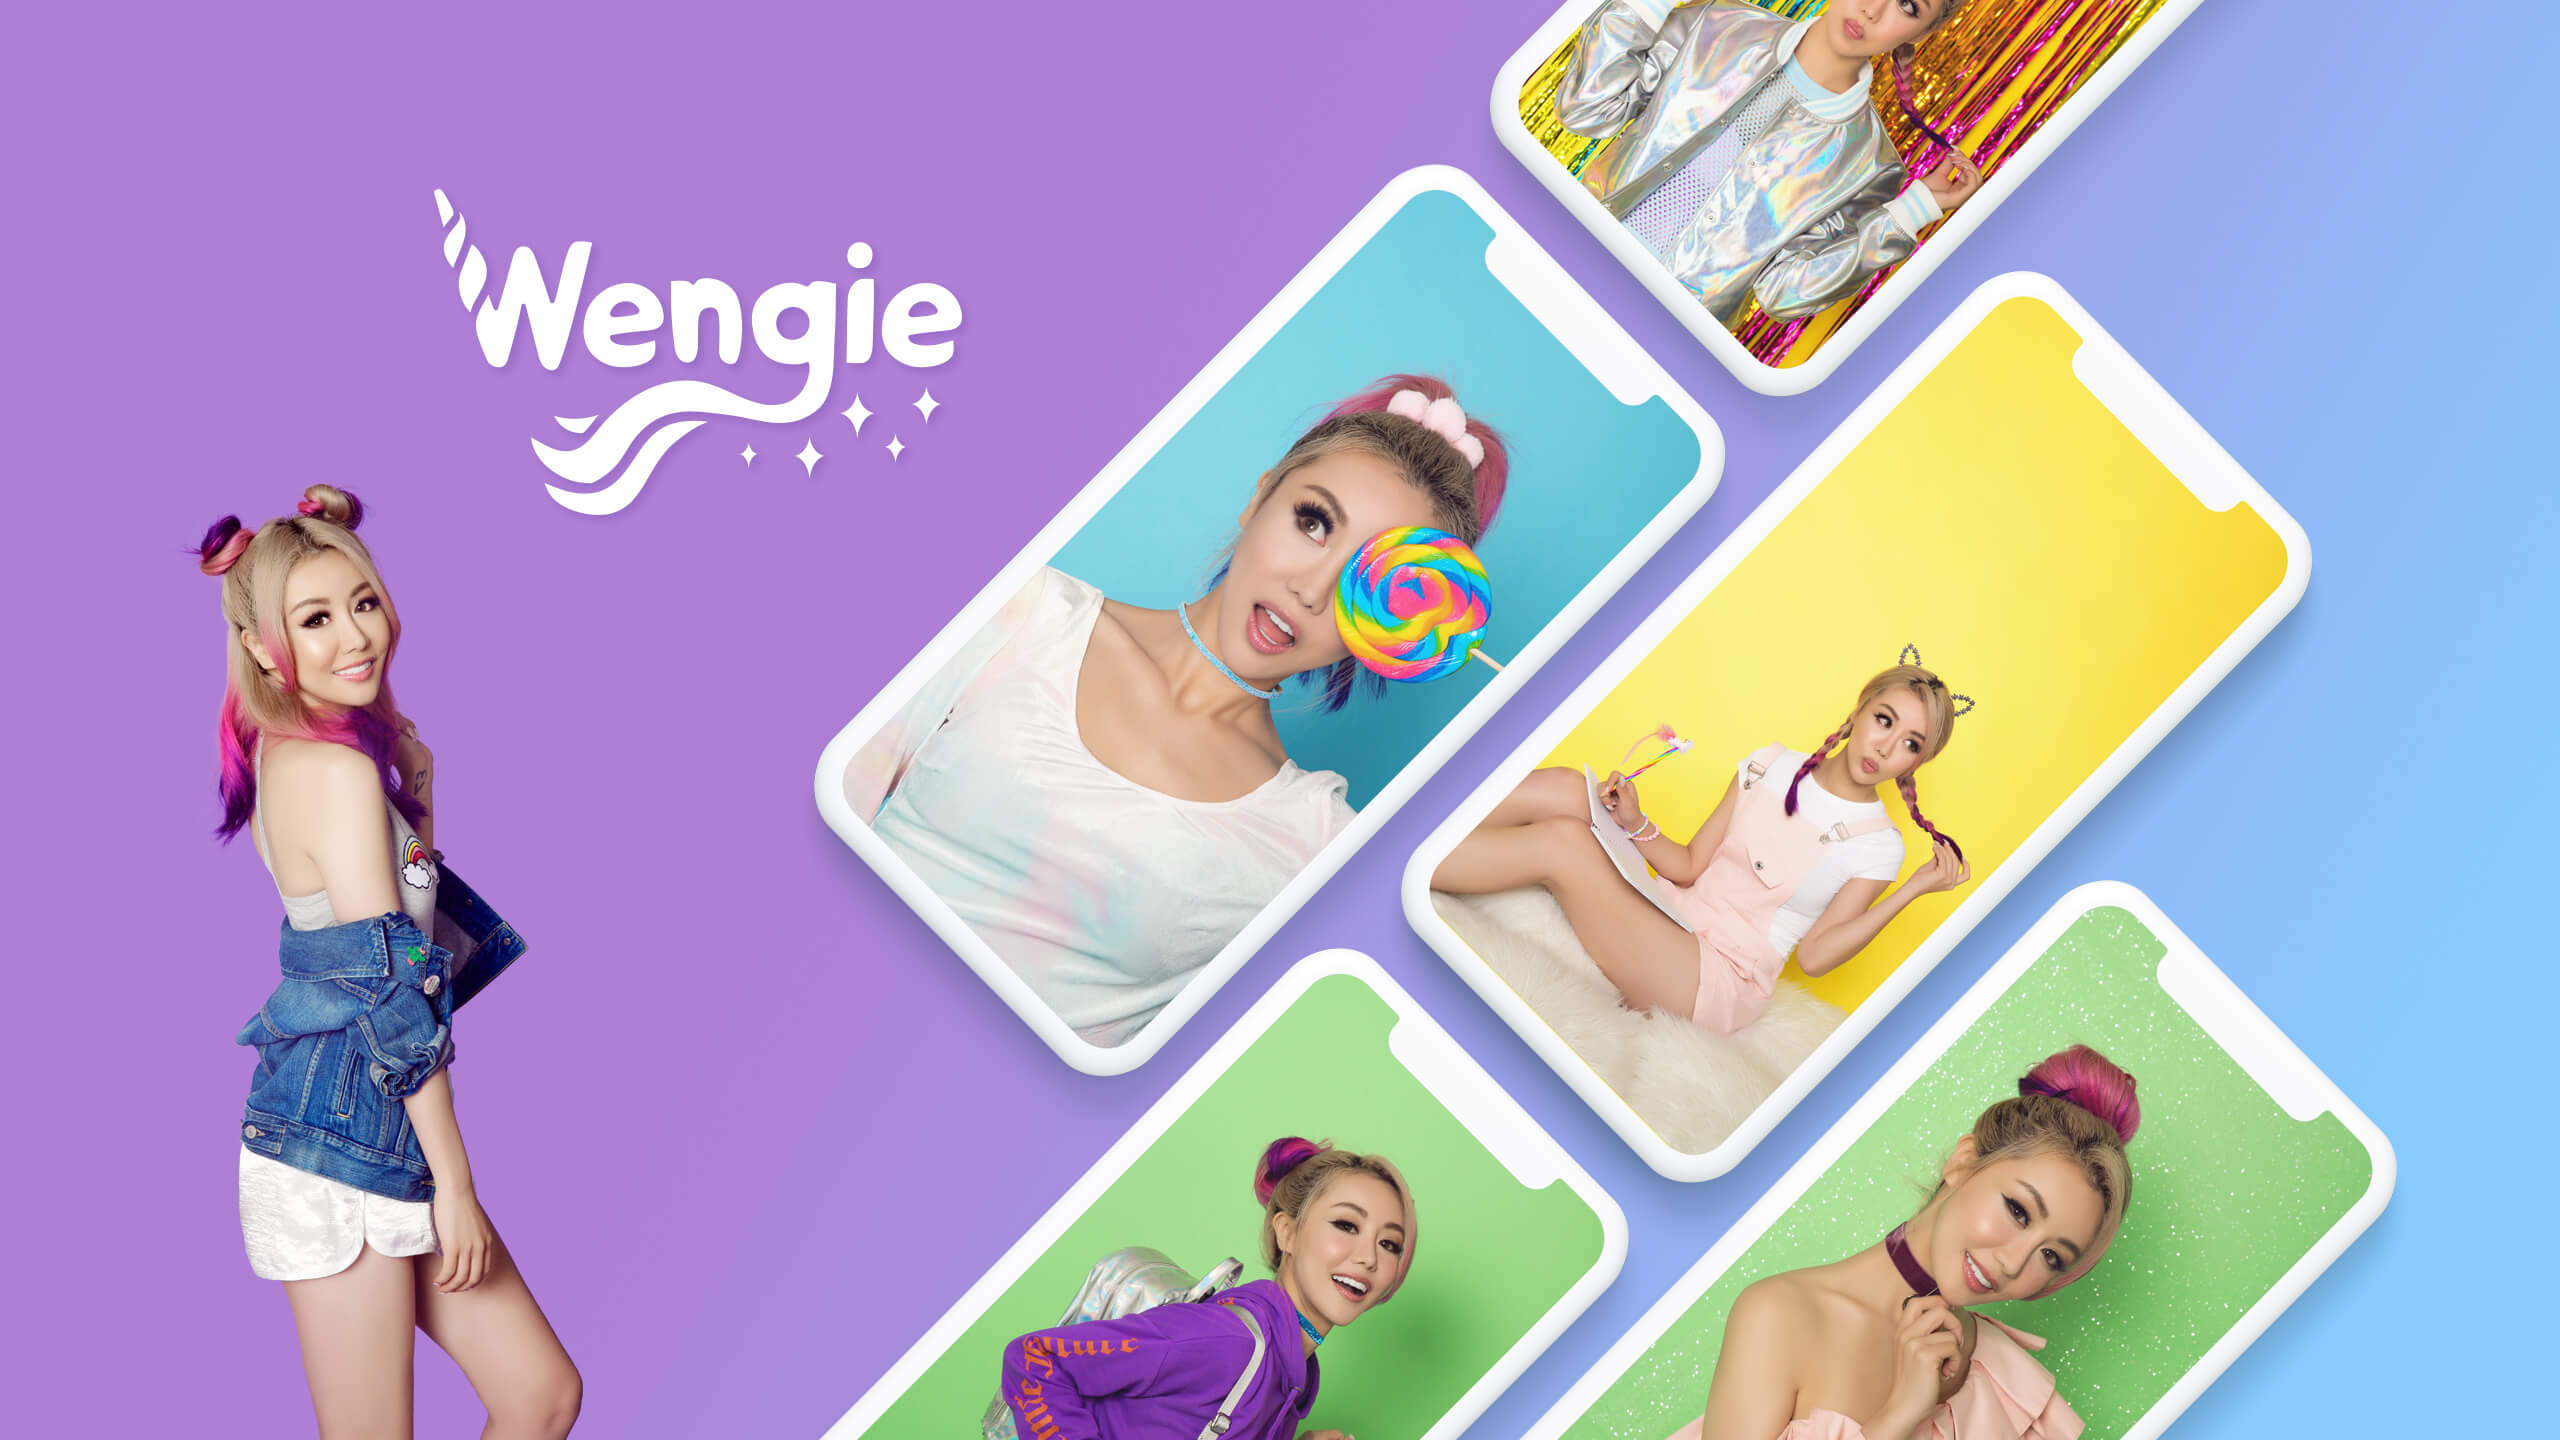 Victorious-Wengie-Semplice-2560-1440